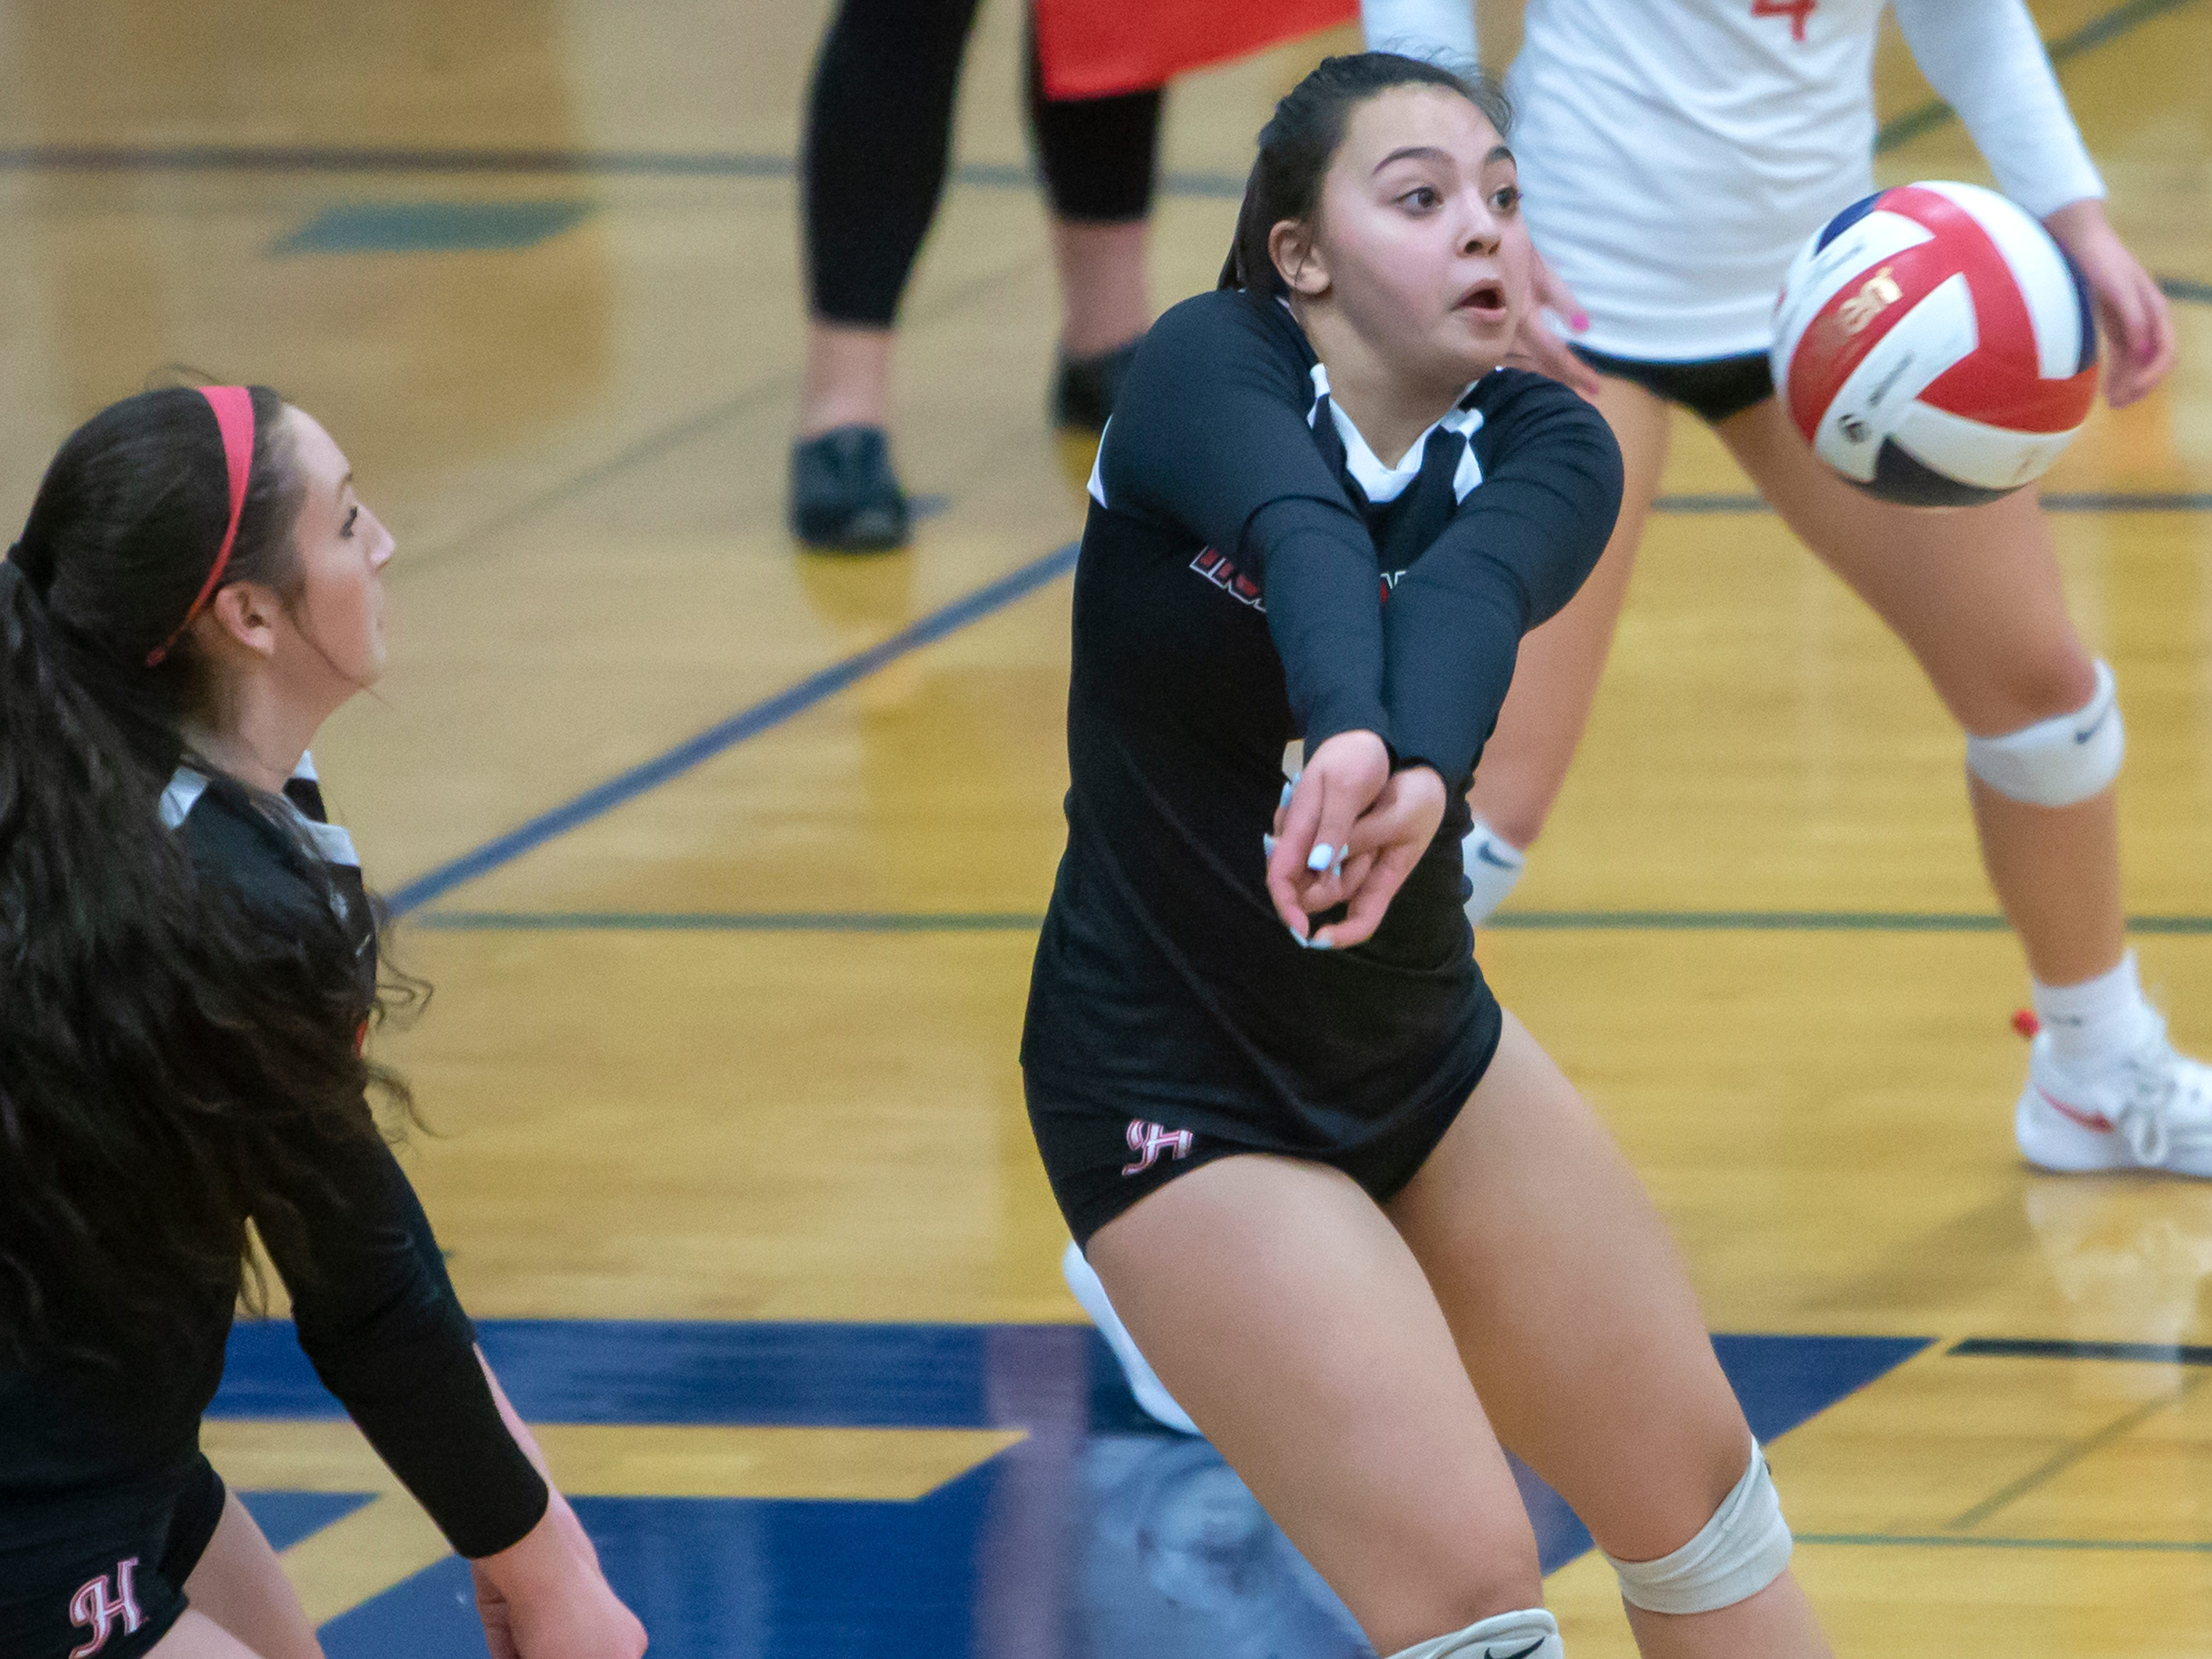 Hortonville's Abby Vela sets up the ball from a Wildcat serve playing at Oshkosh West High School on Thursday, October 11, 2018.